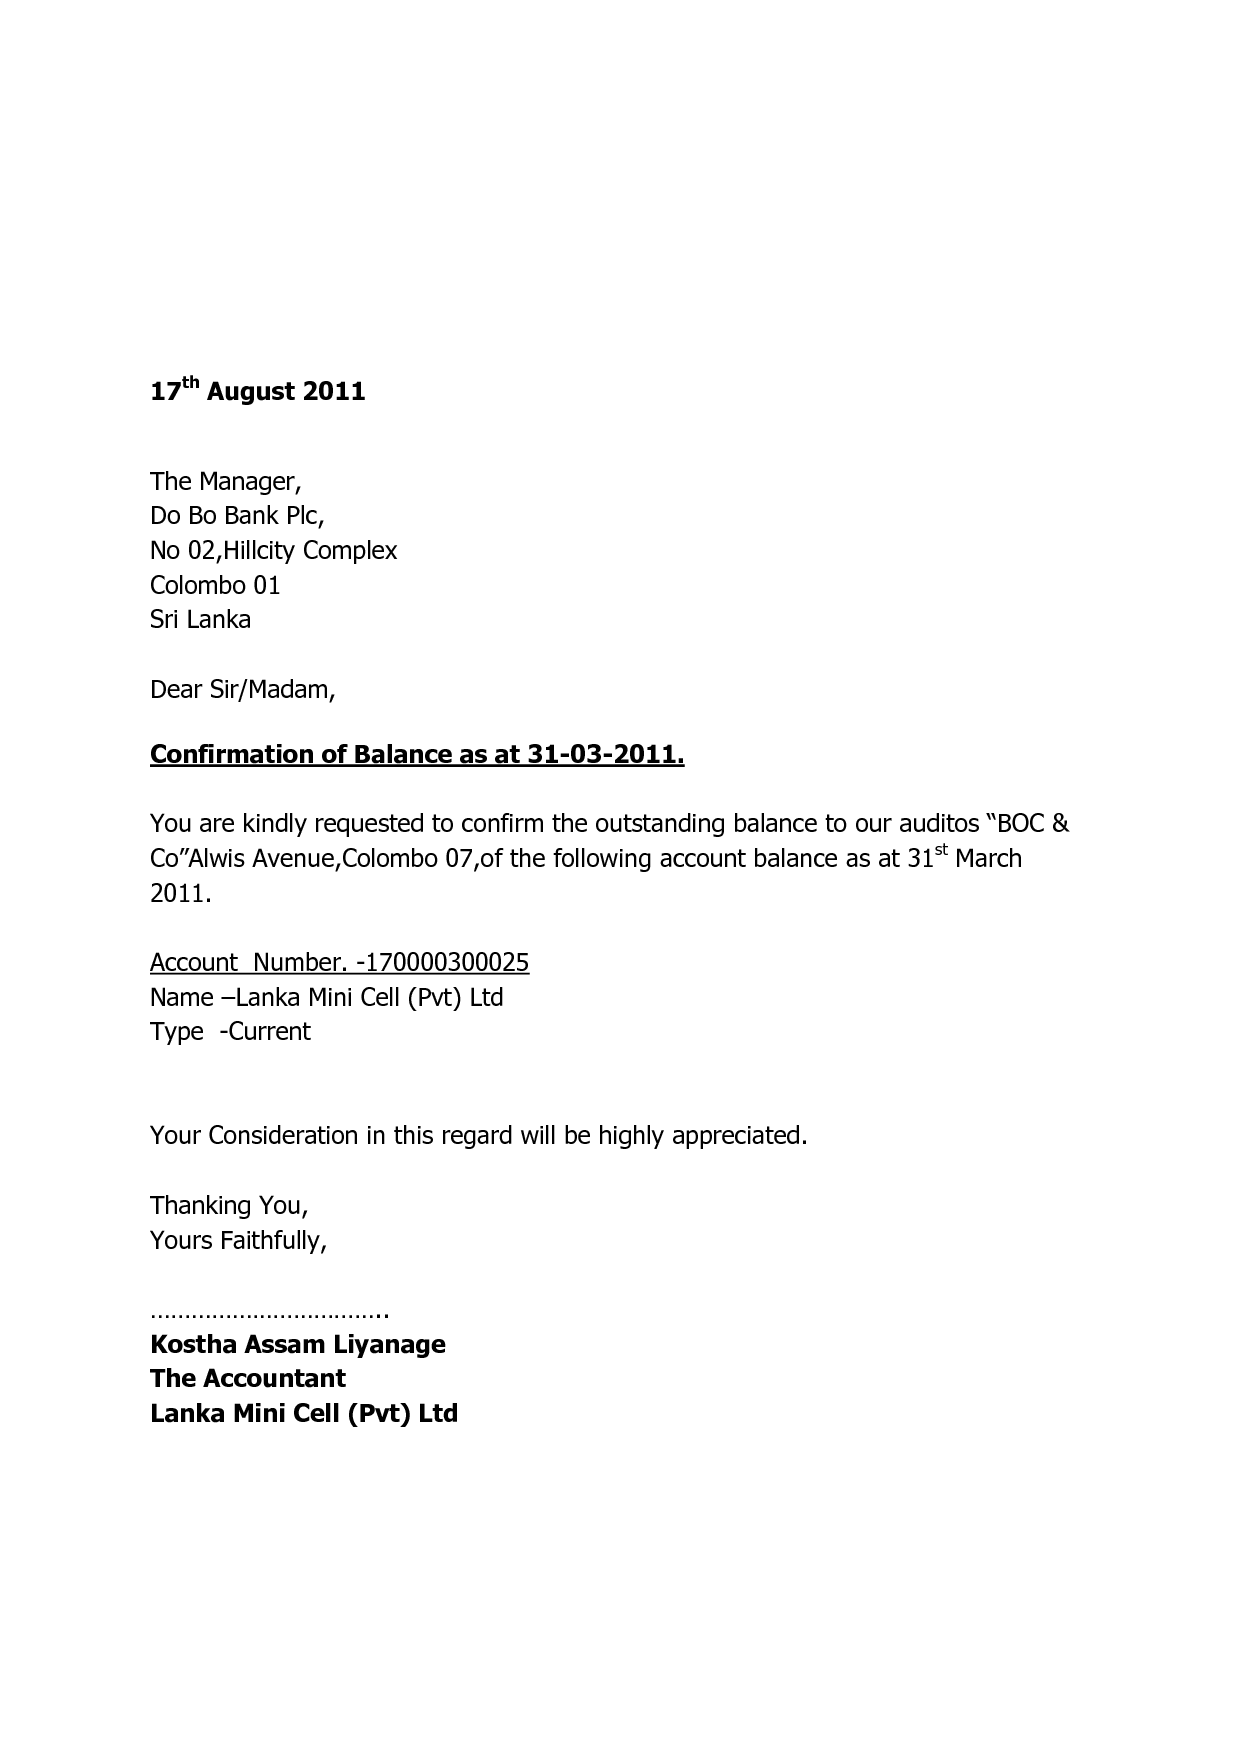 Debtors Confirmation Letter Template